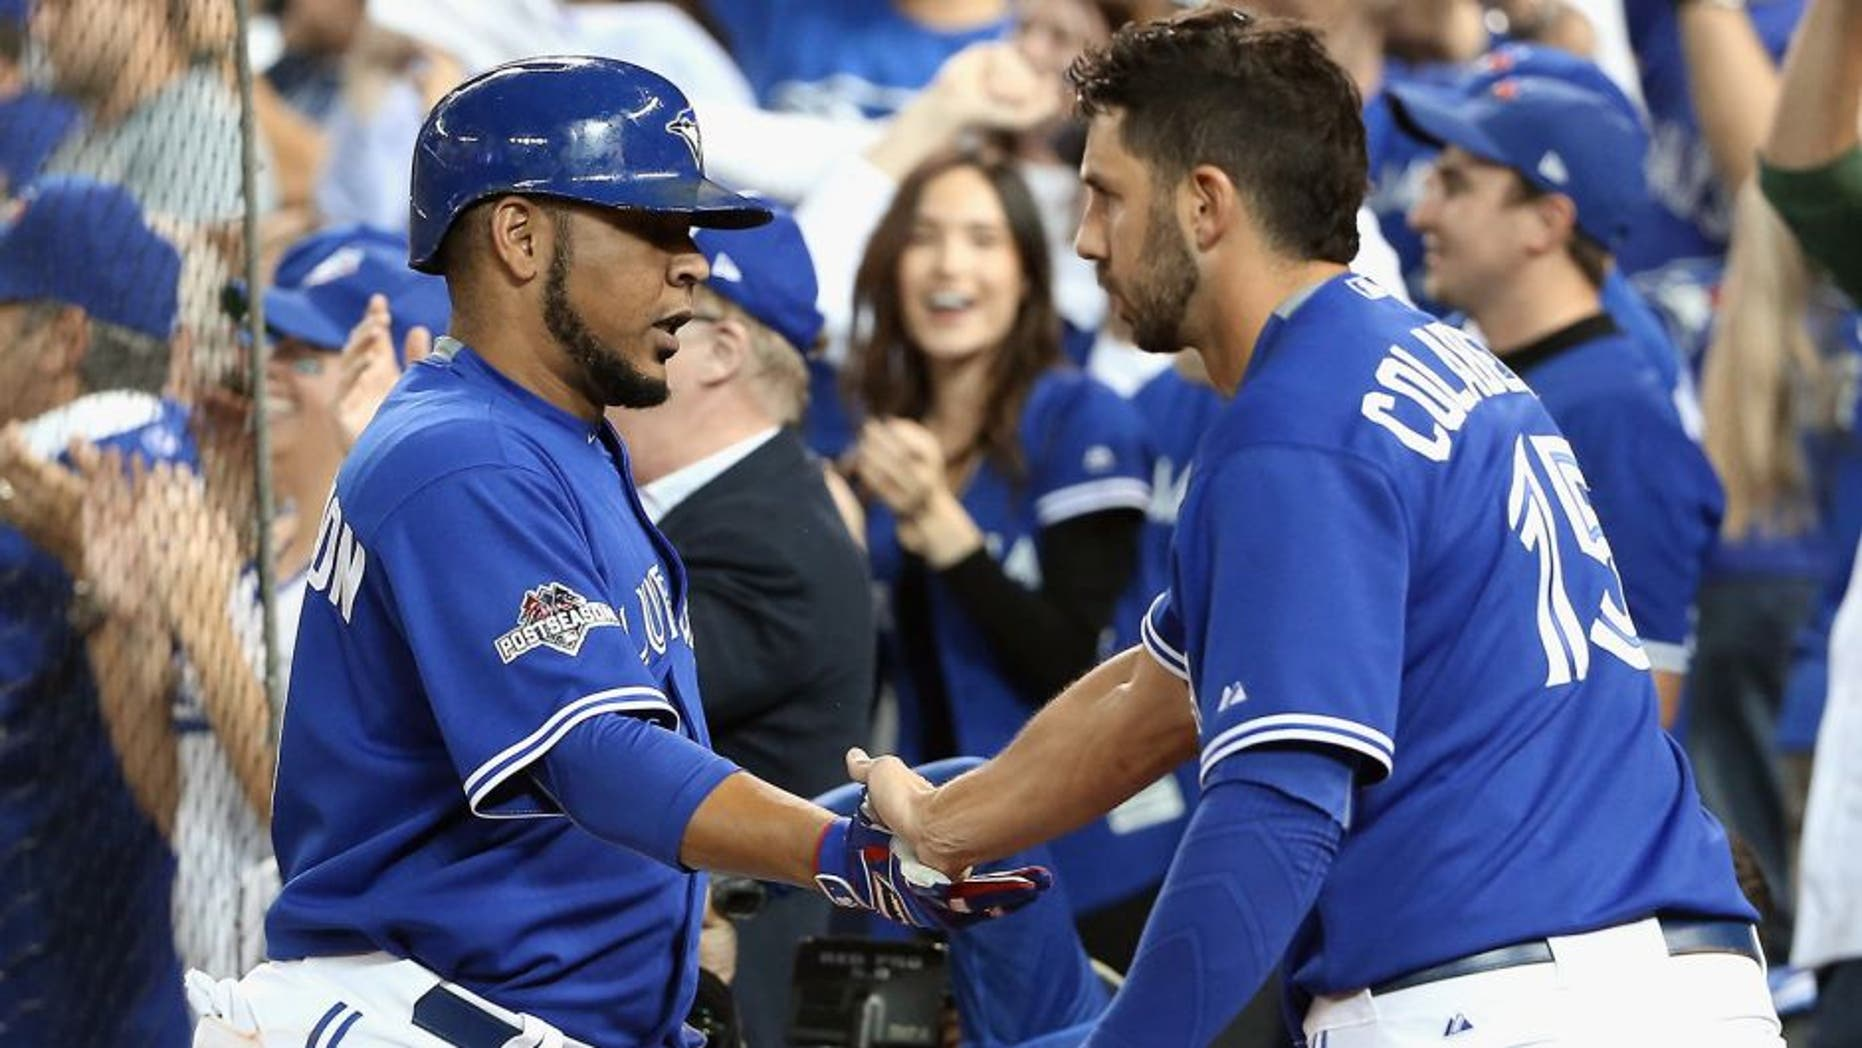 TORONTO, ON - OCTOBER 21: Edwin Encarnacion #10 of the Toronto Blue Jays is congratulated by Chris Colabello #15 of the Toronto Blue Jays after scoring a run in the sixth inning against the Kansas City Royals during game five of the American League Championship Series at Rogers Centre on October 21, 2015 in Toronto, Canada. (Photo by Tom Szczerbowski/Getty Images)